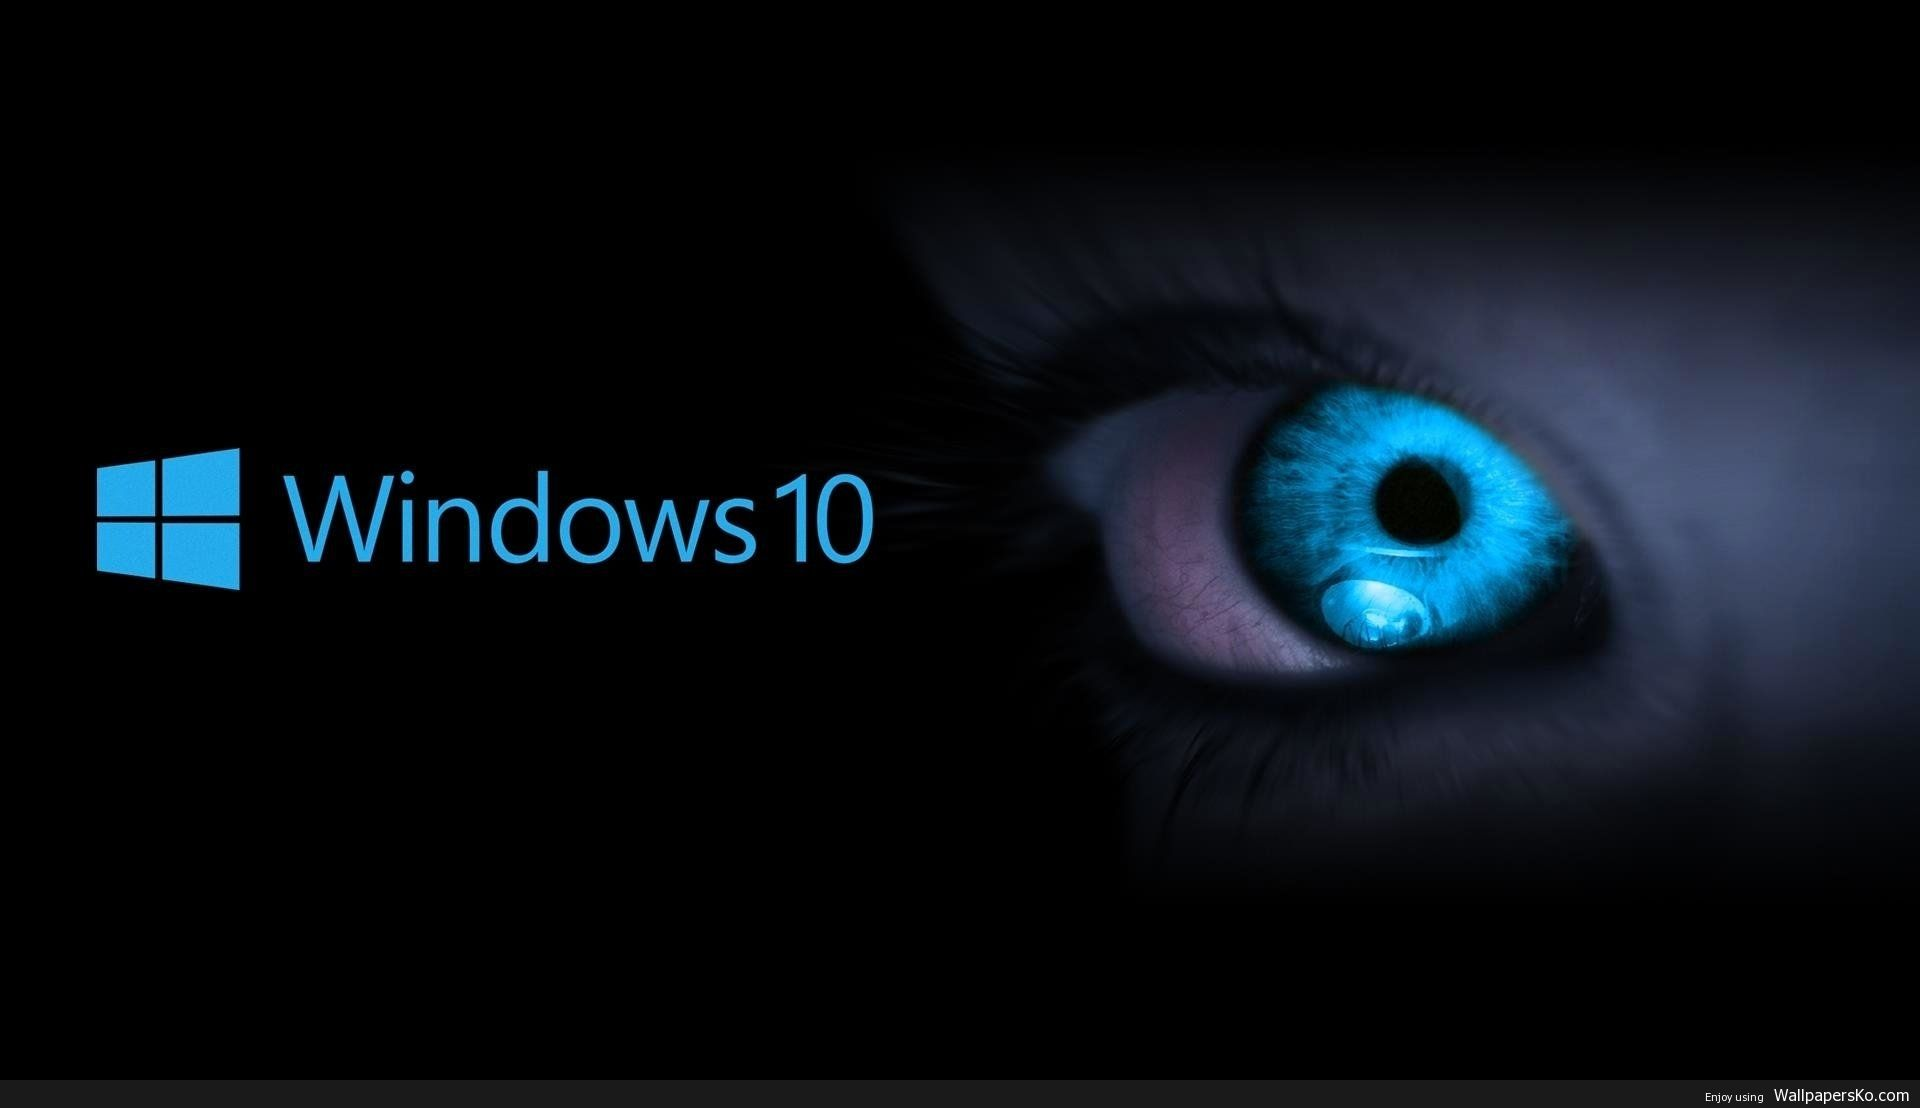 Windows 10 Wallpapers Hd Http Wallpapersko Com Windows 10 Wallpapers Hd Html Hd Wallpapers Dow Wallpaper Windows 10 Windows Wallpaper Hd Wallpaper Desktop